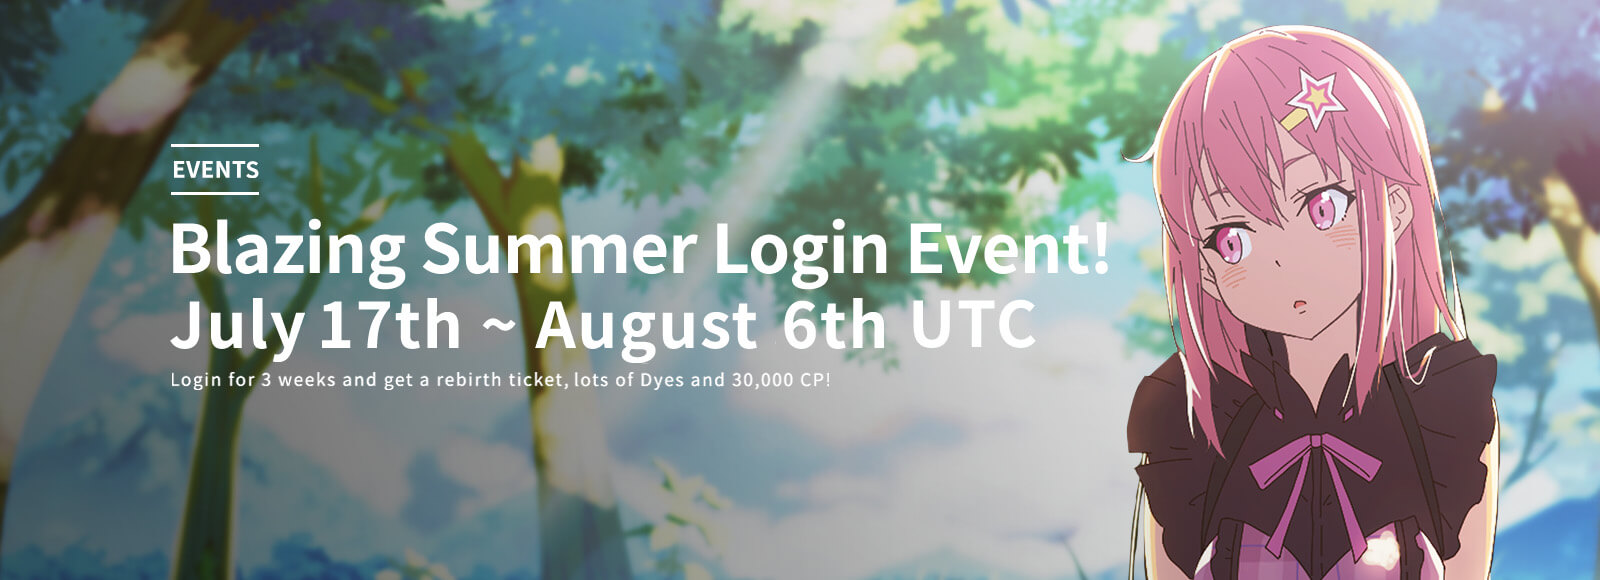 Blazing Summer Login Event!